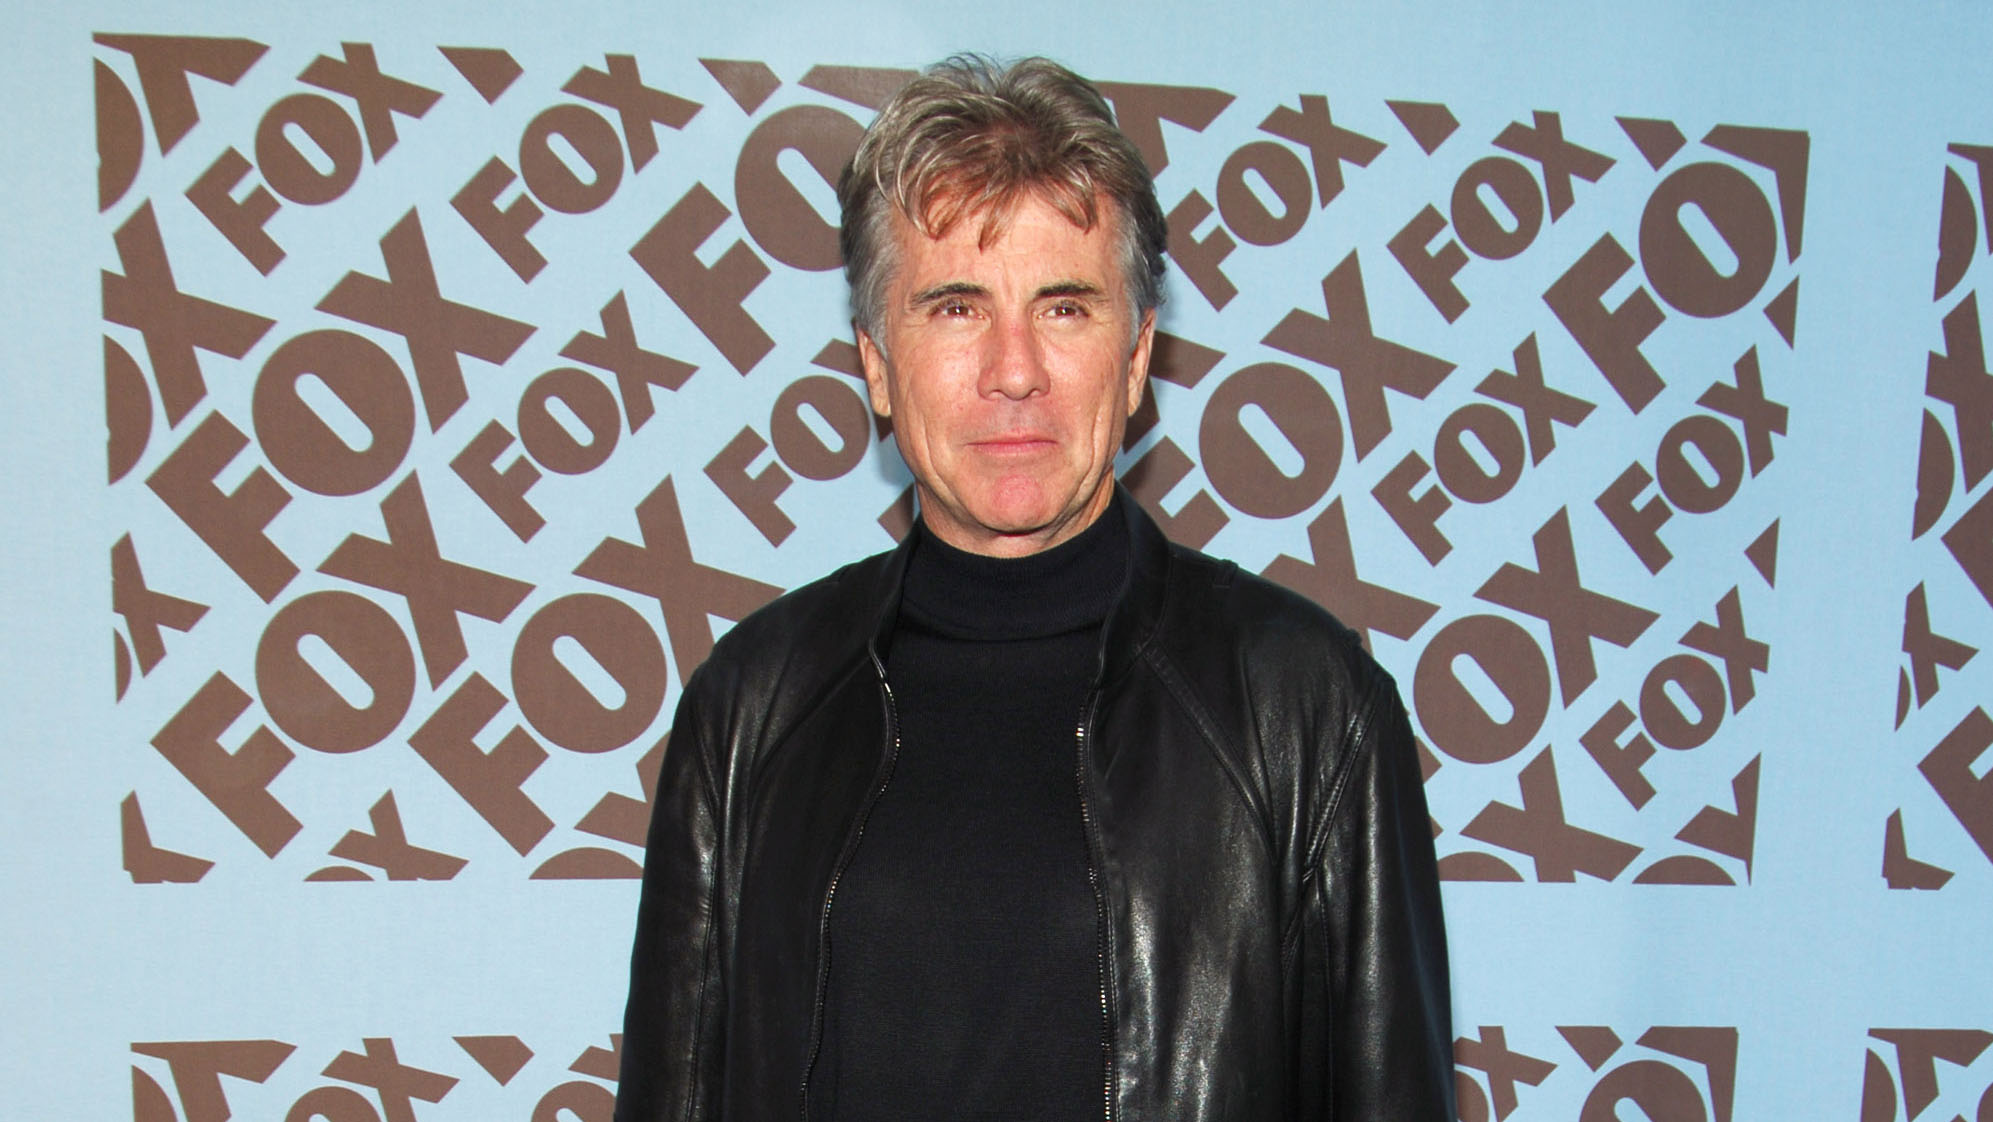 John Walsh Remembers Son Adam 38 Years After His Murder Exclusive ^ hartman, shannon (august 23, 2008), bill burr: john walsh remembers son adam 38 years after his murder exclusive